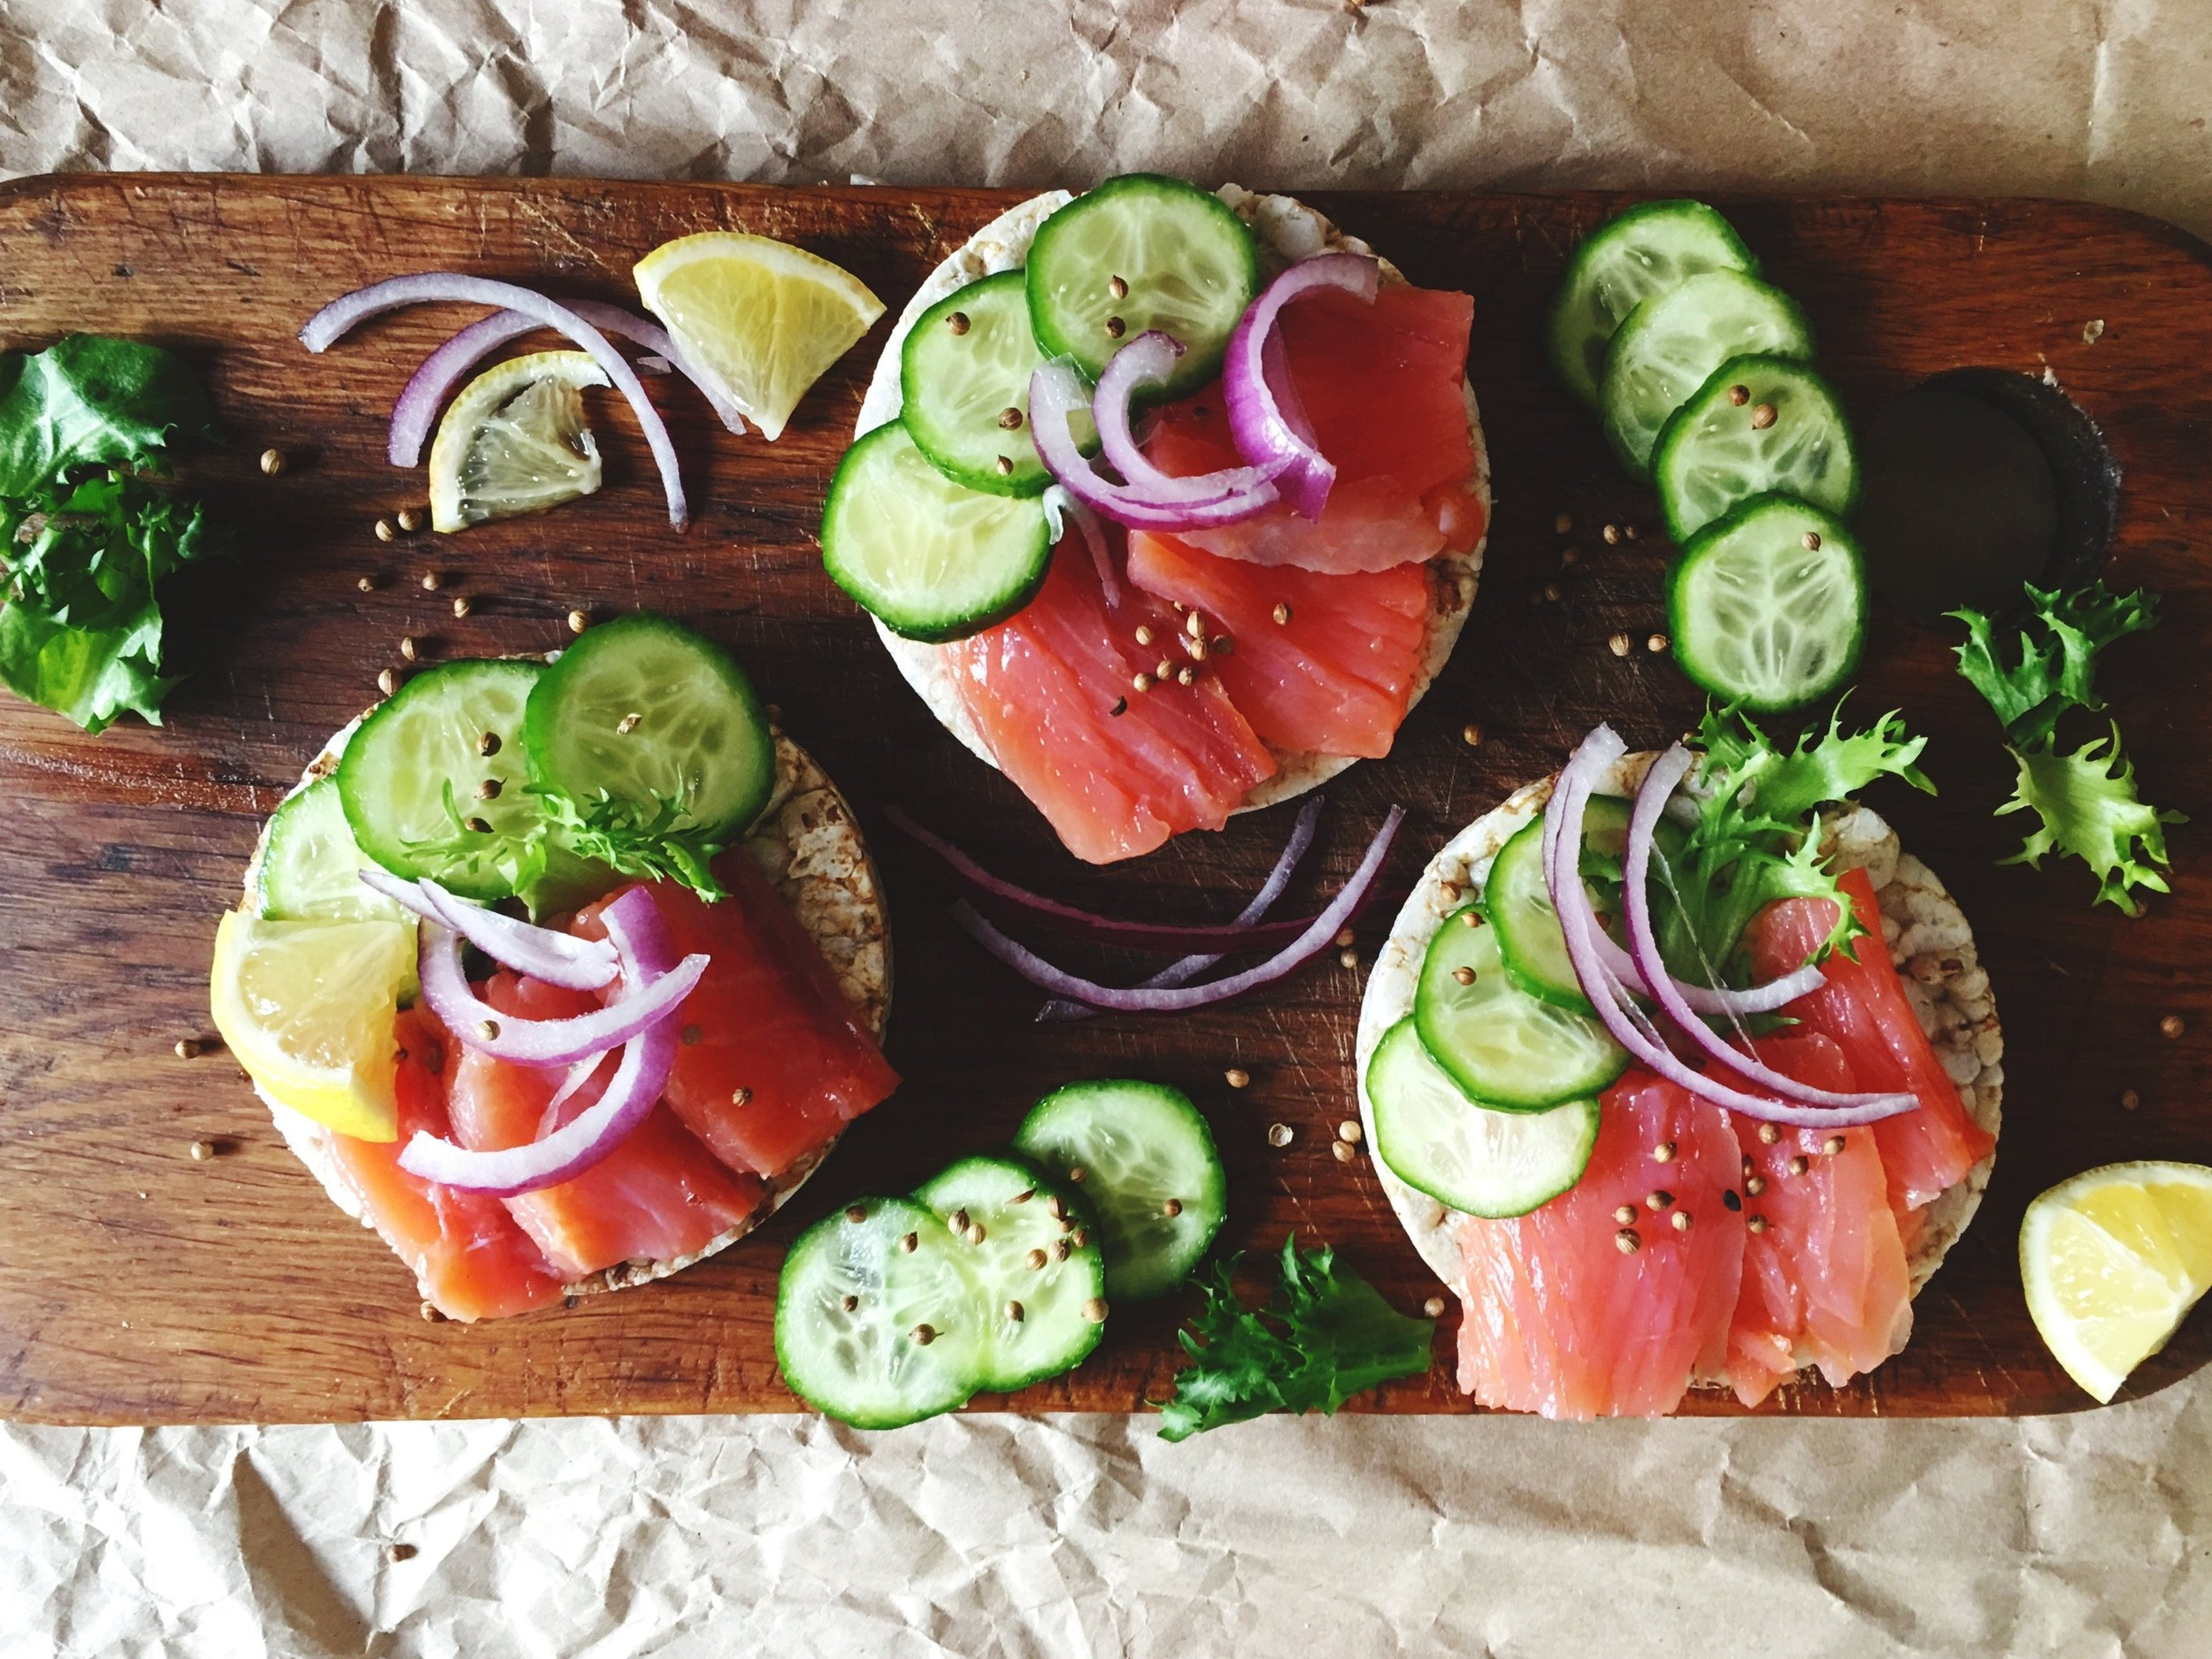 Cucumbers can add a refreshing, light taste to a variety of meals. Photo by Yakynina Anastasia